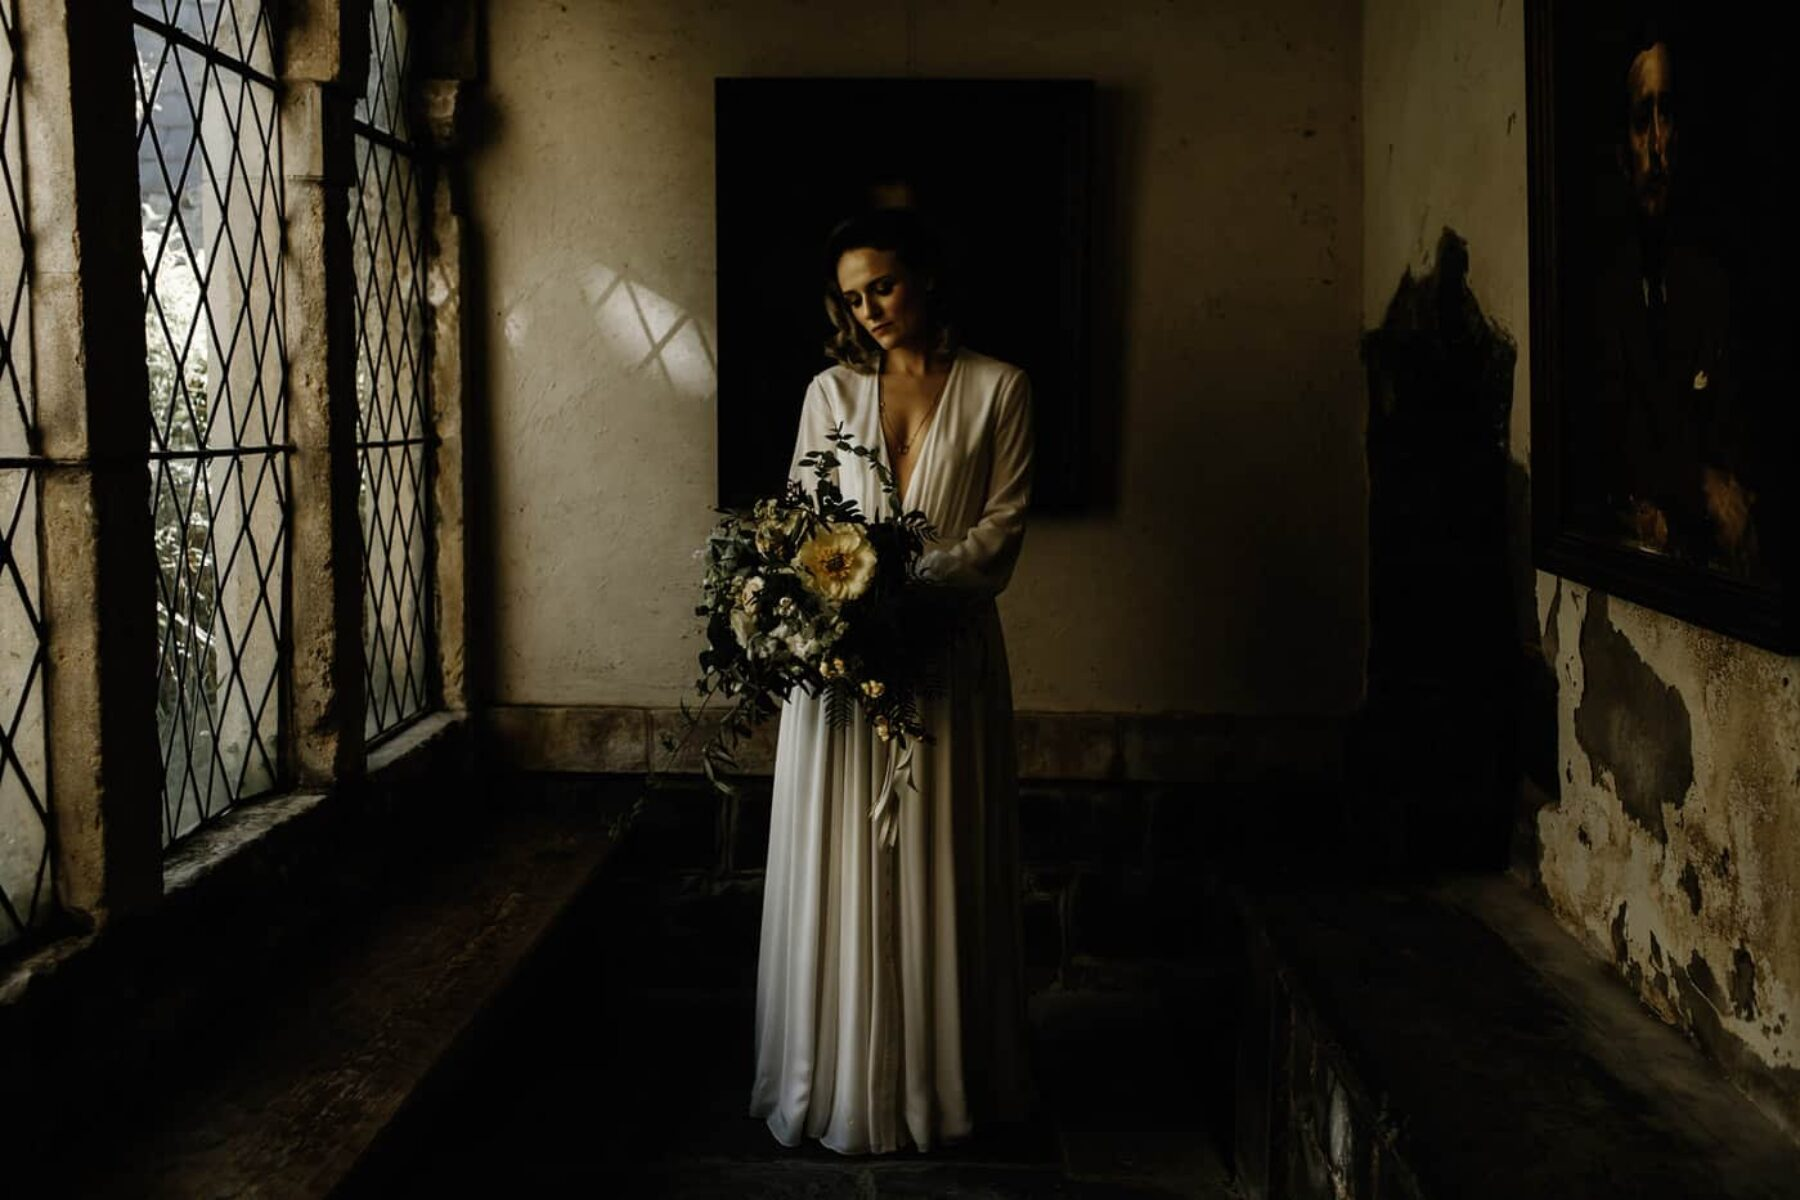 bride in robe-style wedding dress with yellow and white bouquet